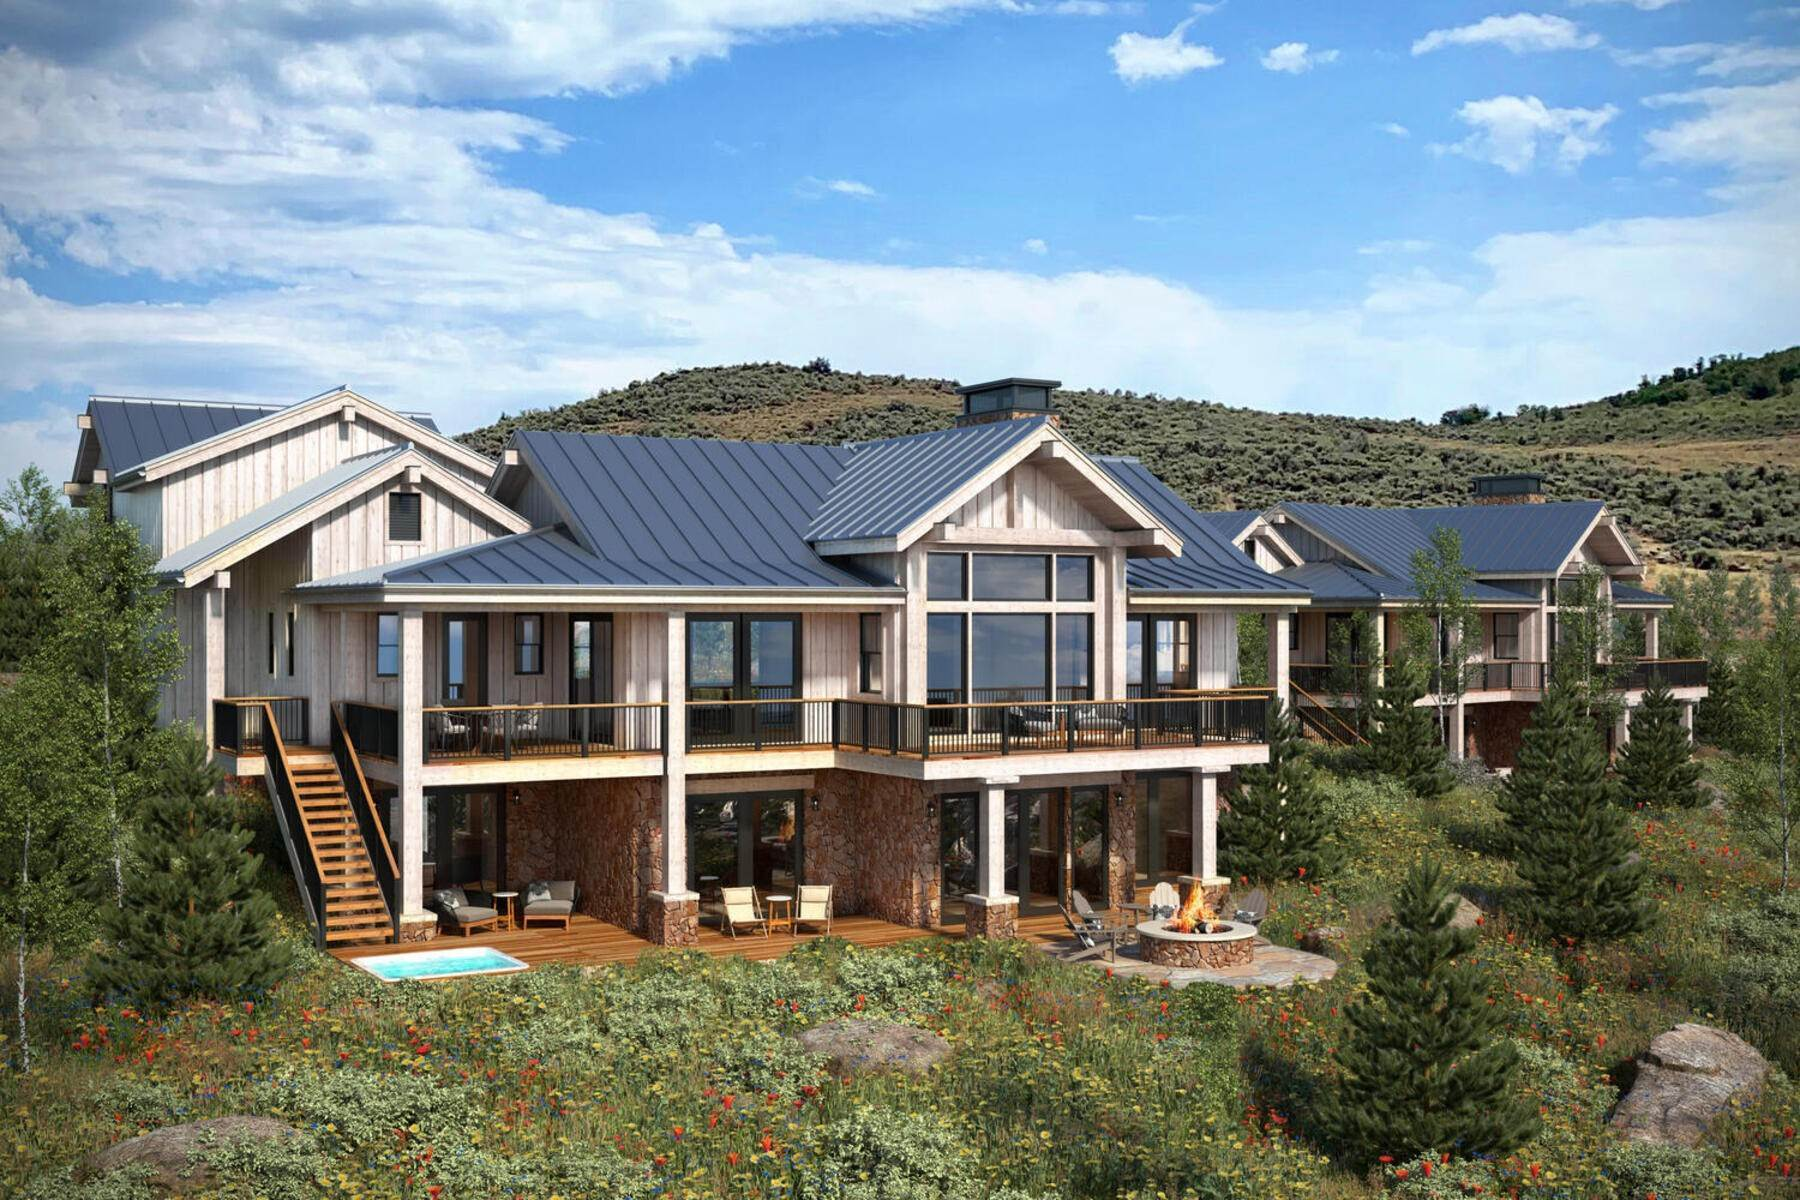 3. fractional ownership prop for Sale at 1/8 Fractional Ownership Opportunity In Brand New Kingfisher Cabin 7615 E Stardust Court #319E, 5.13 Heber City, Utah 84032 United States